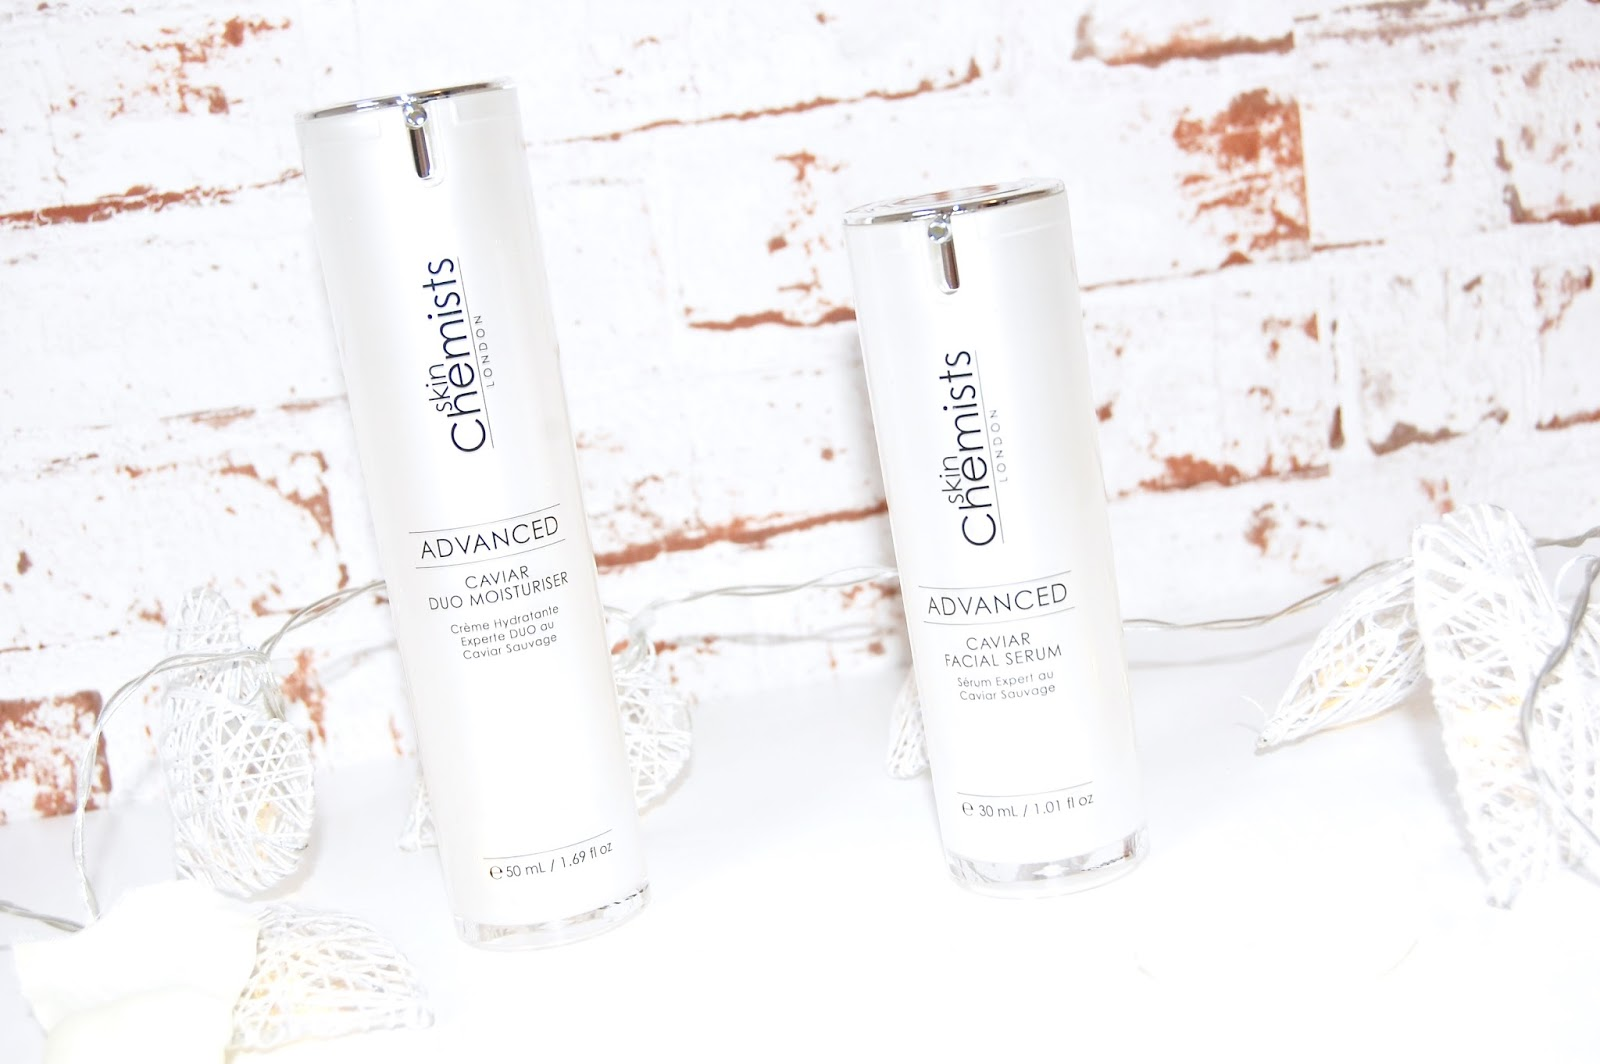 Skin Chemists Advanced Caviar skincare range